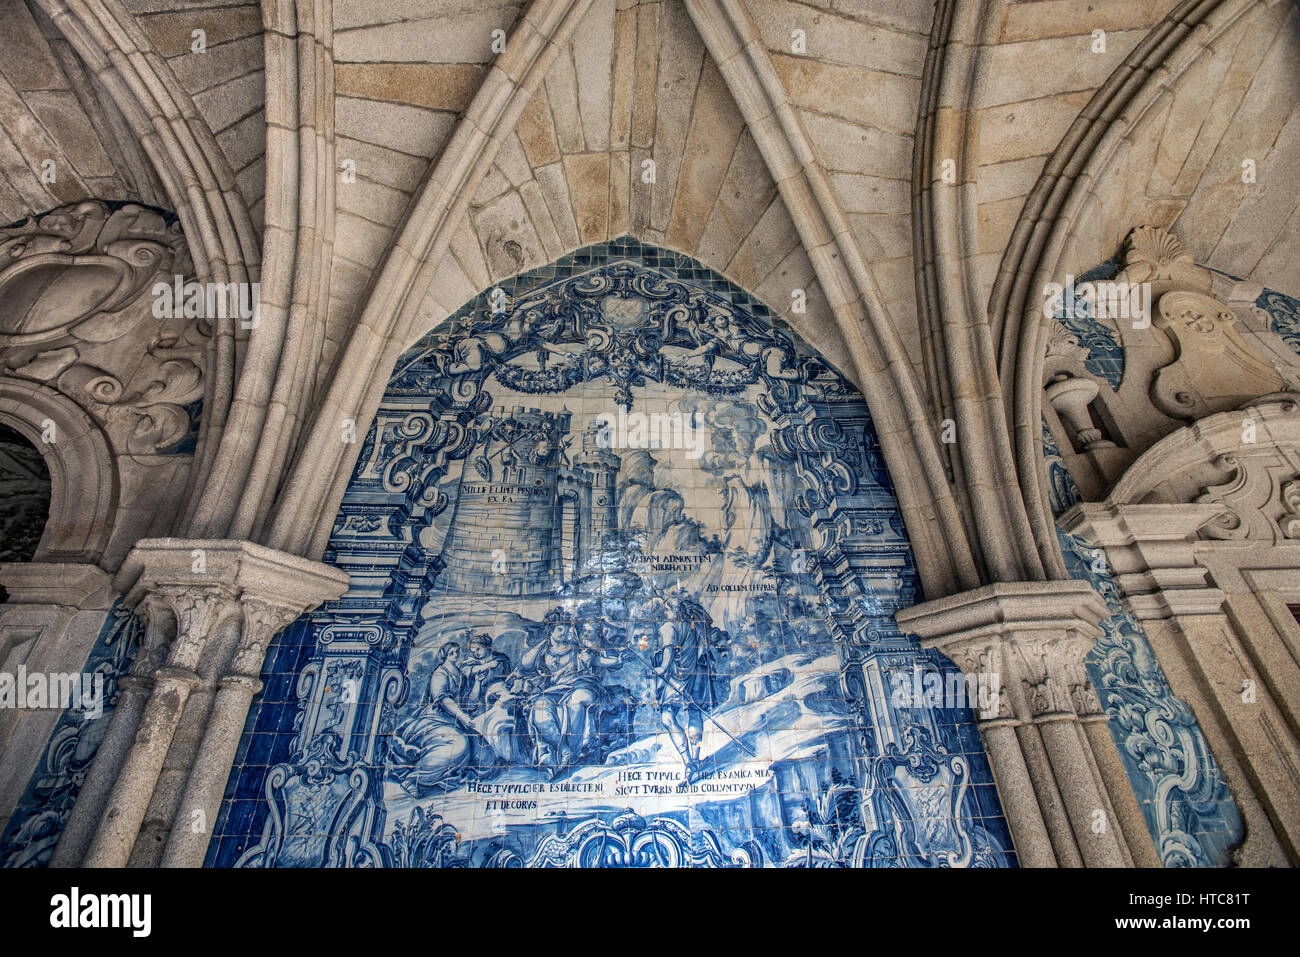 Cloister of Se Cathedral and Azulejos tiles, Port Portugal - Stock Image